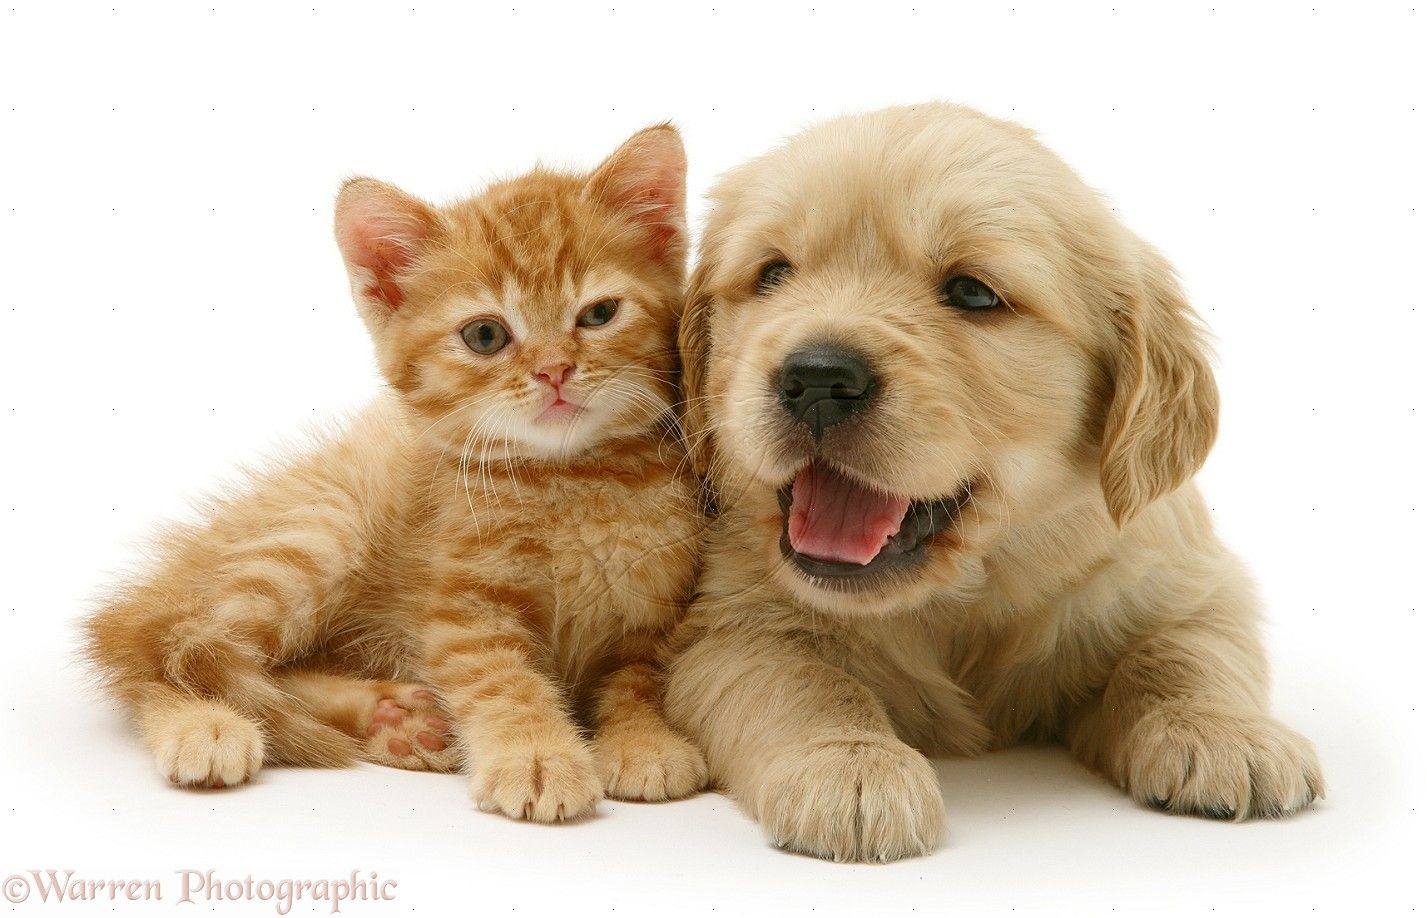 Kitten And Puppy Wallpaper Desktop Cute Puppies And Kittens